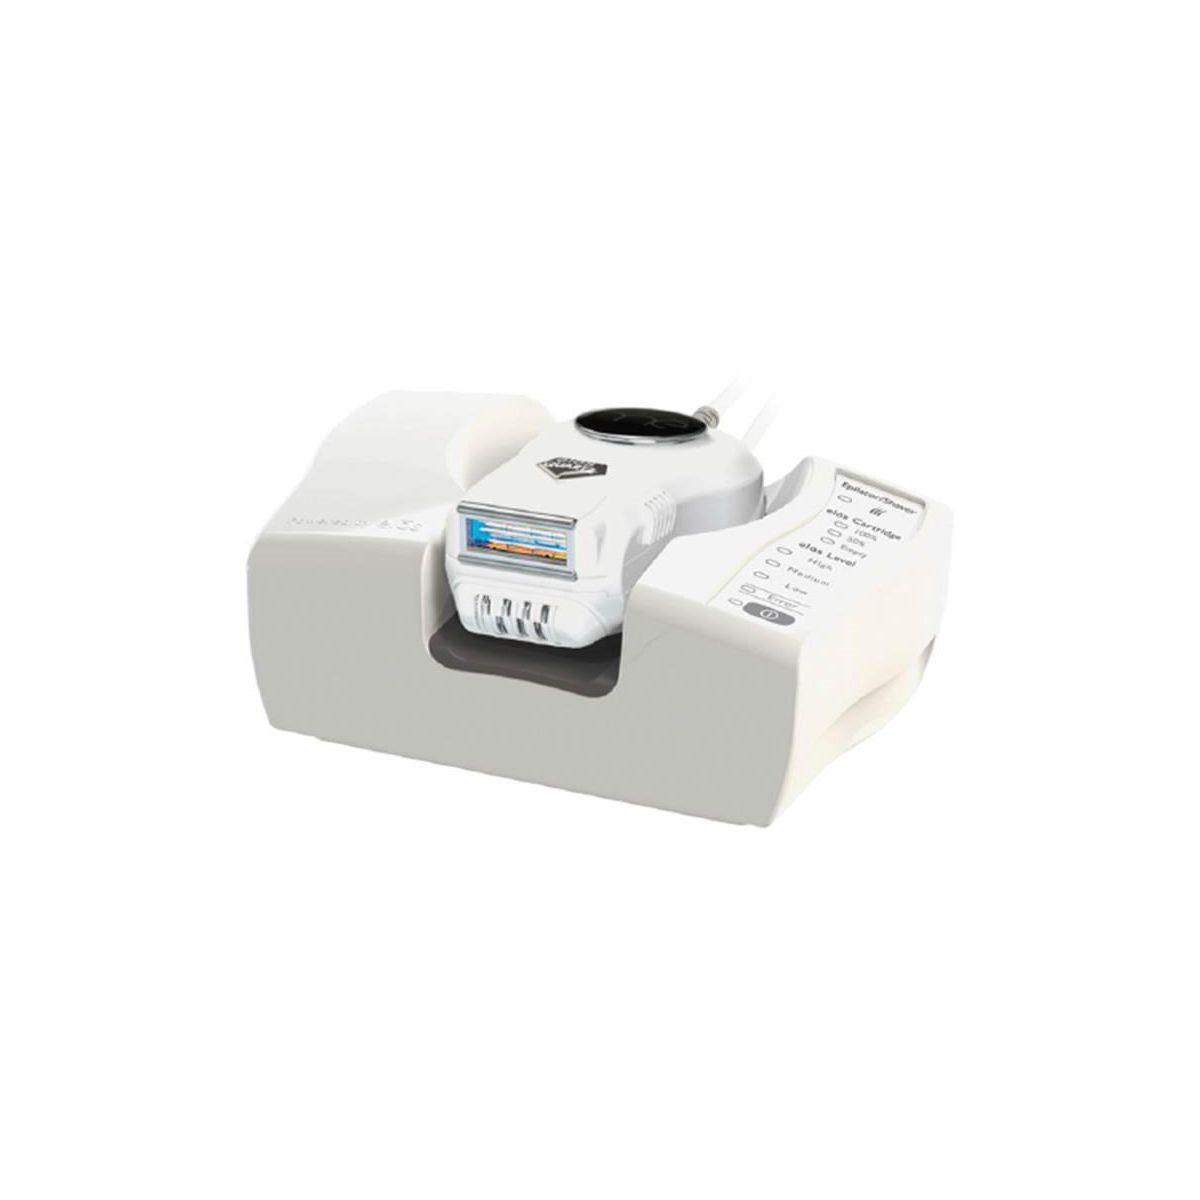 Epilateur lumi?re puls?e me soft tb275 - 20% de remise imm?dia...